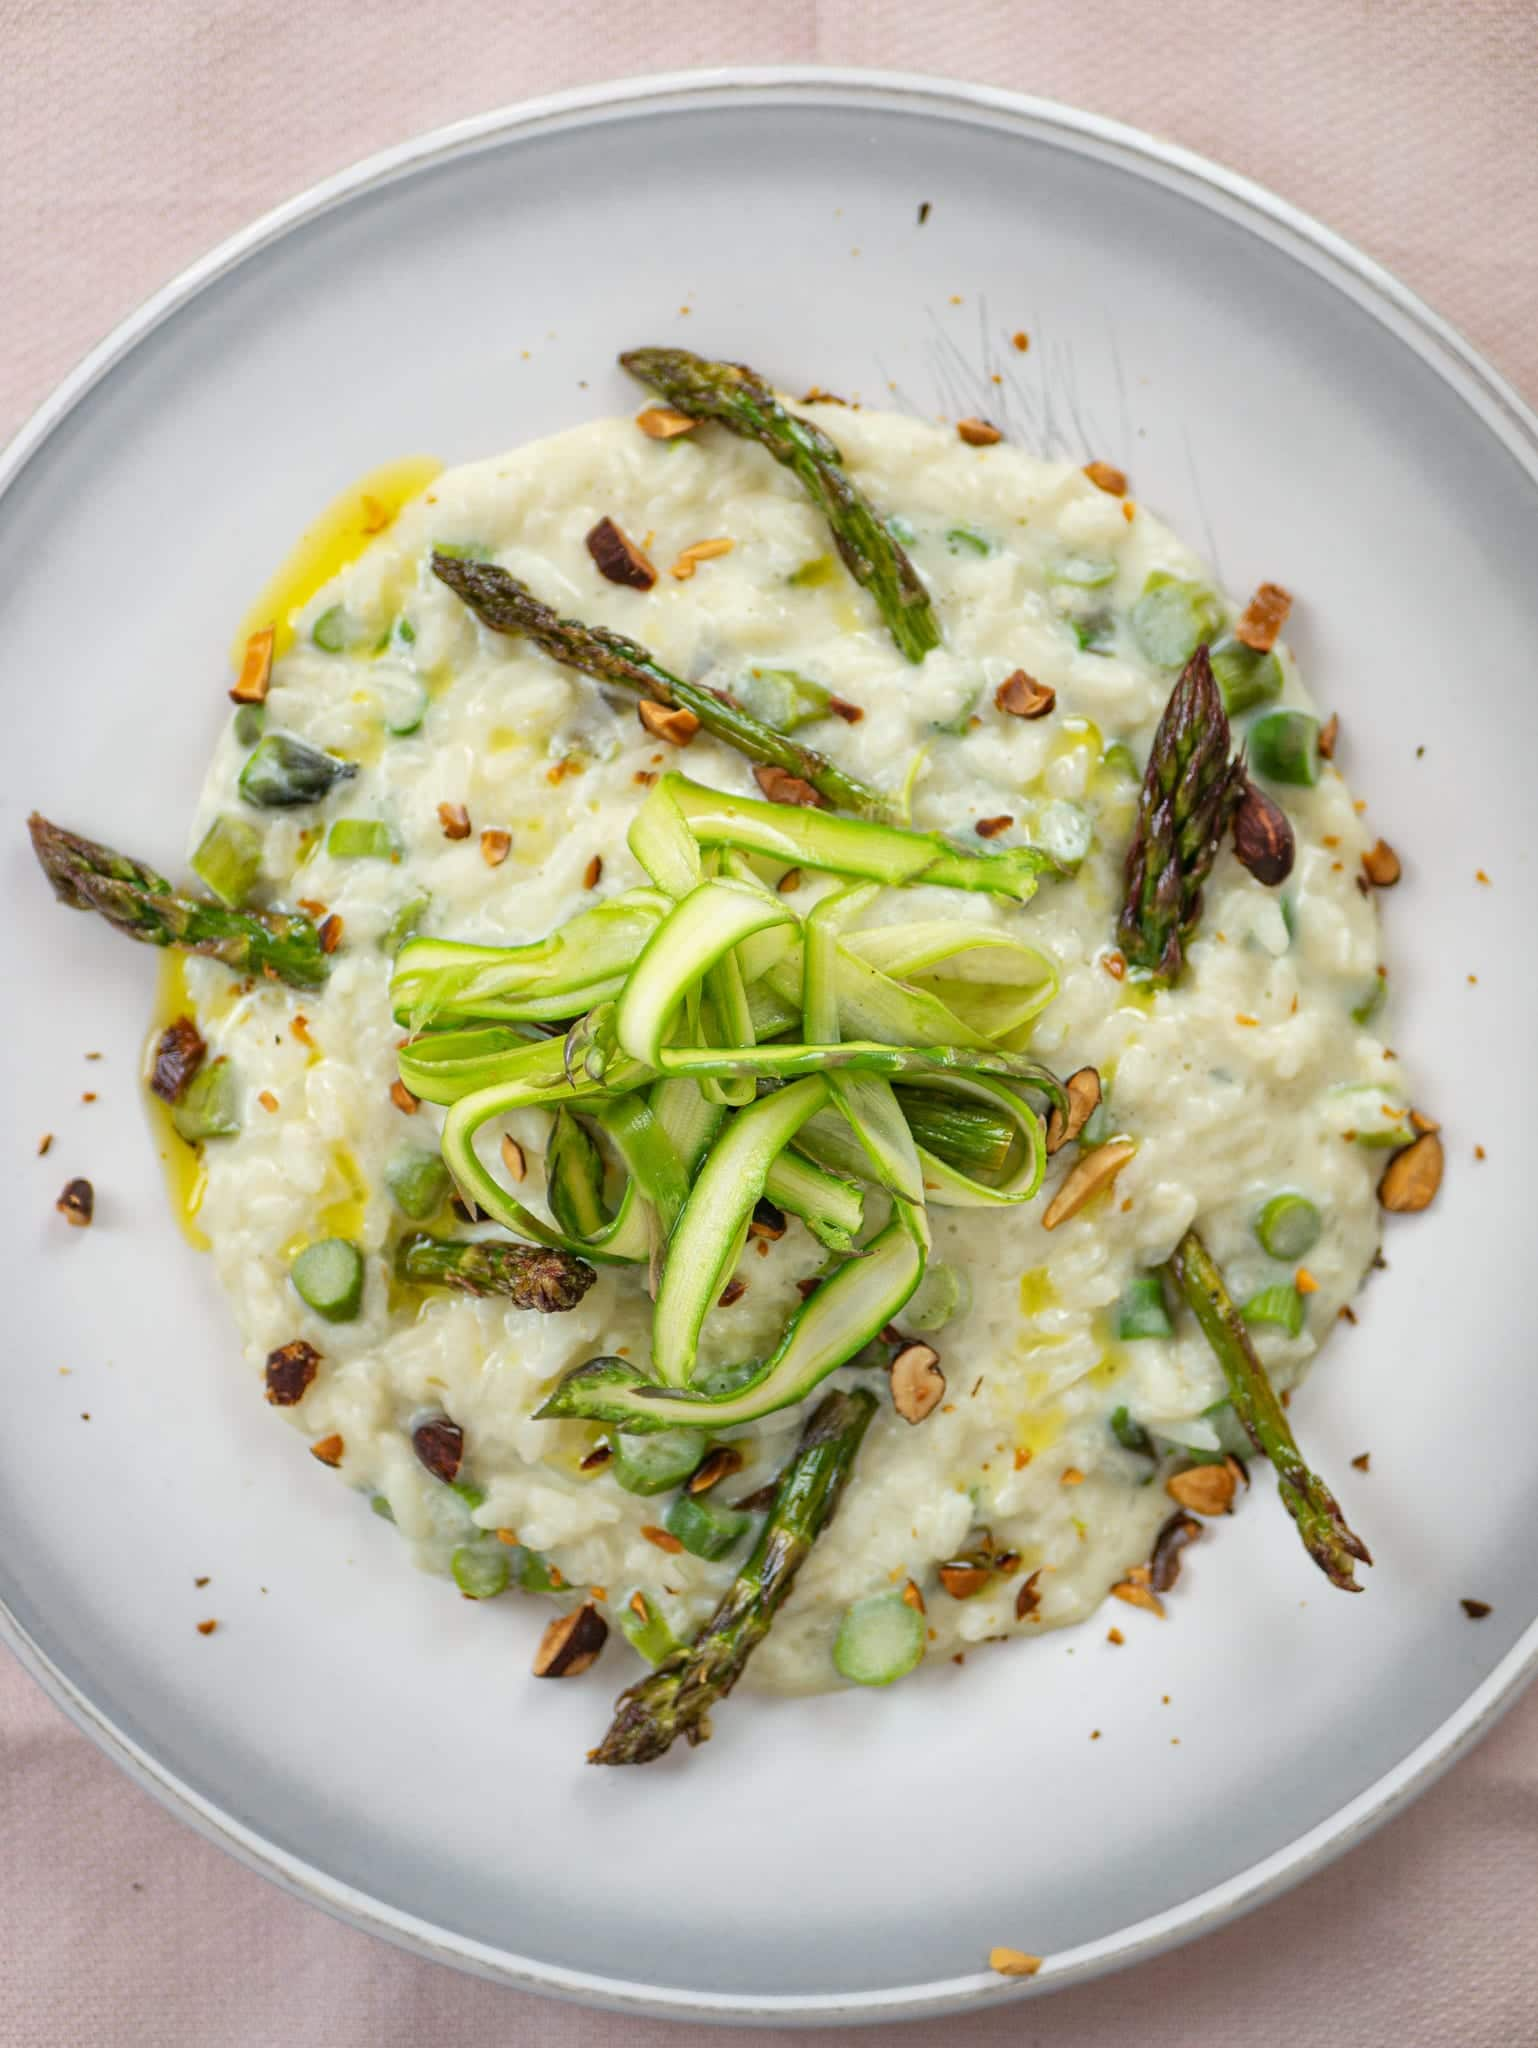 PREVIEW BEST VEGAN ASPARAGUS RISOTTO